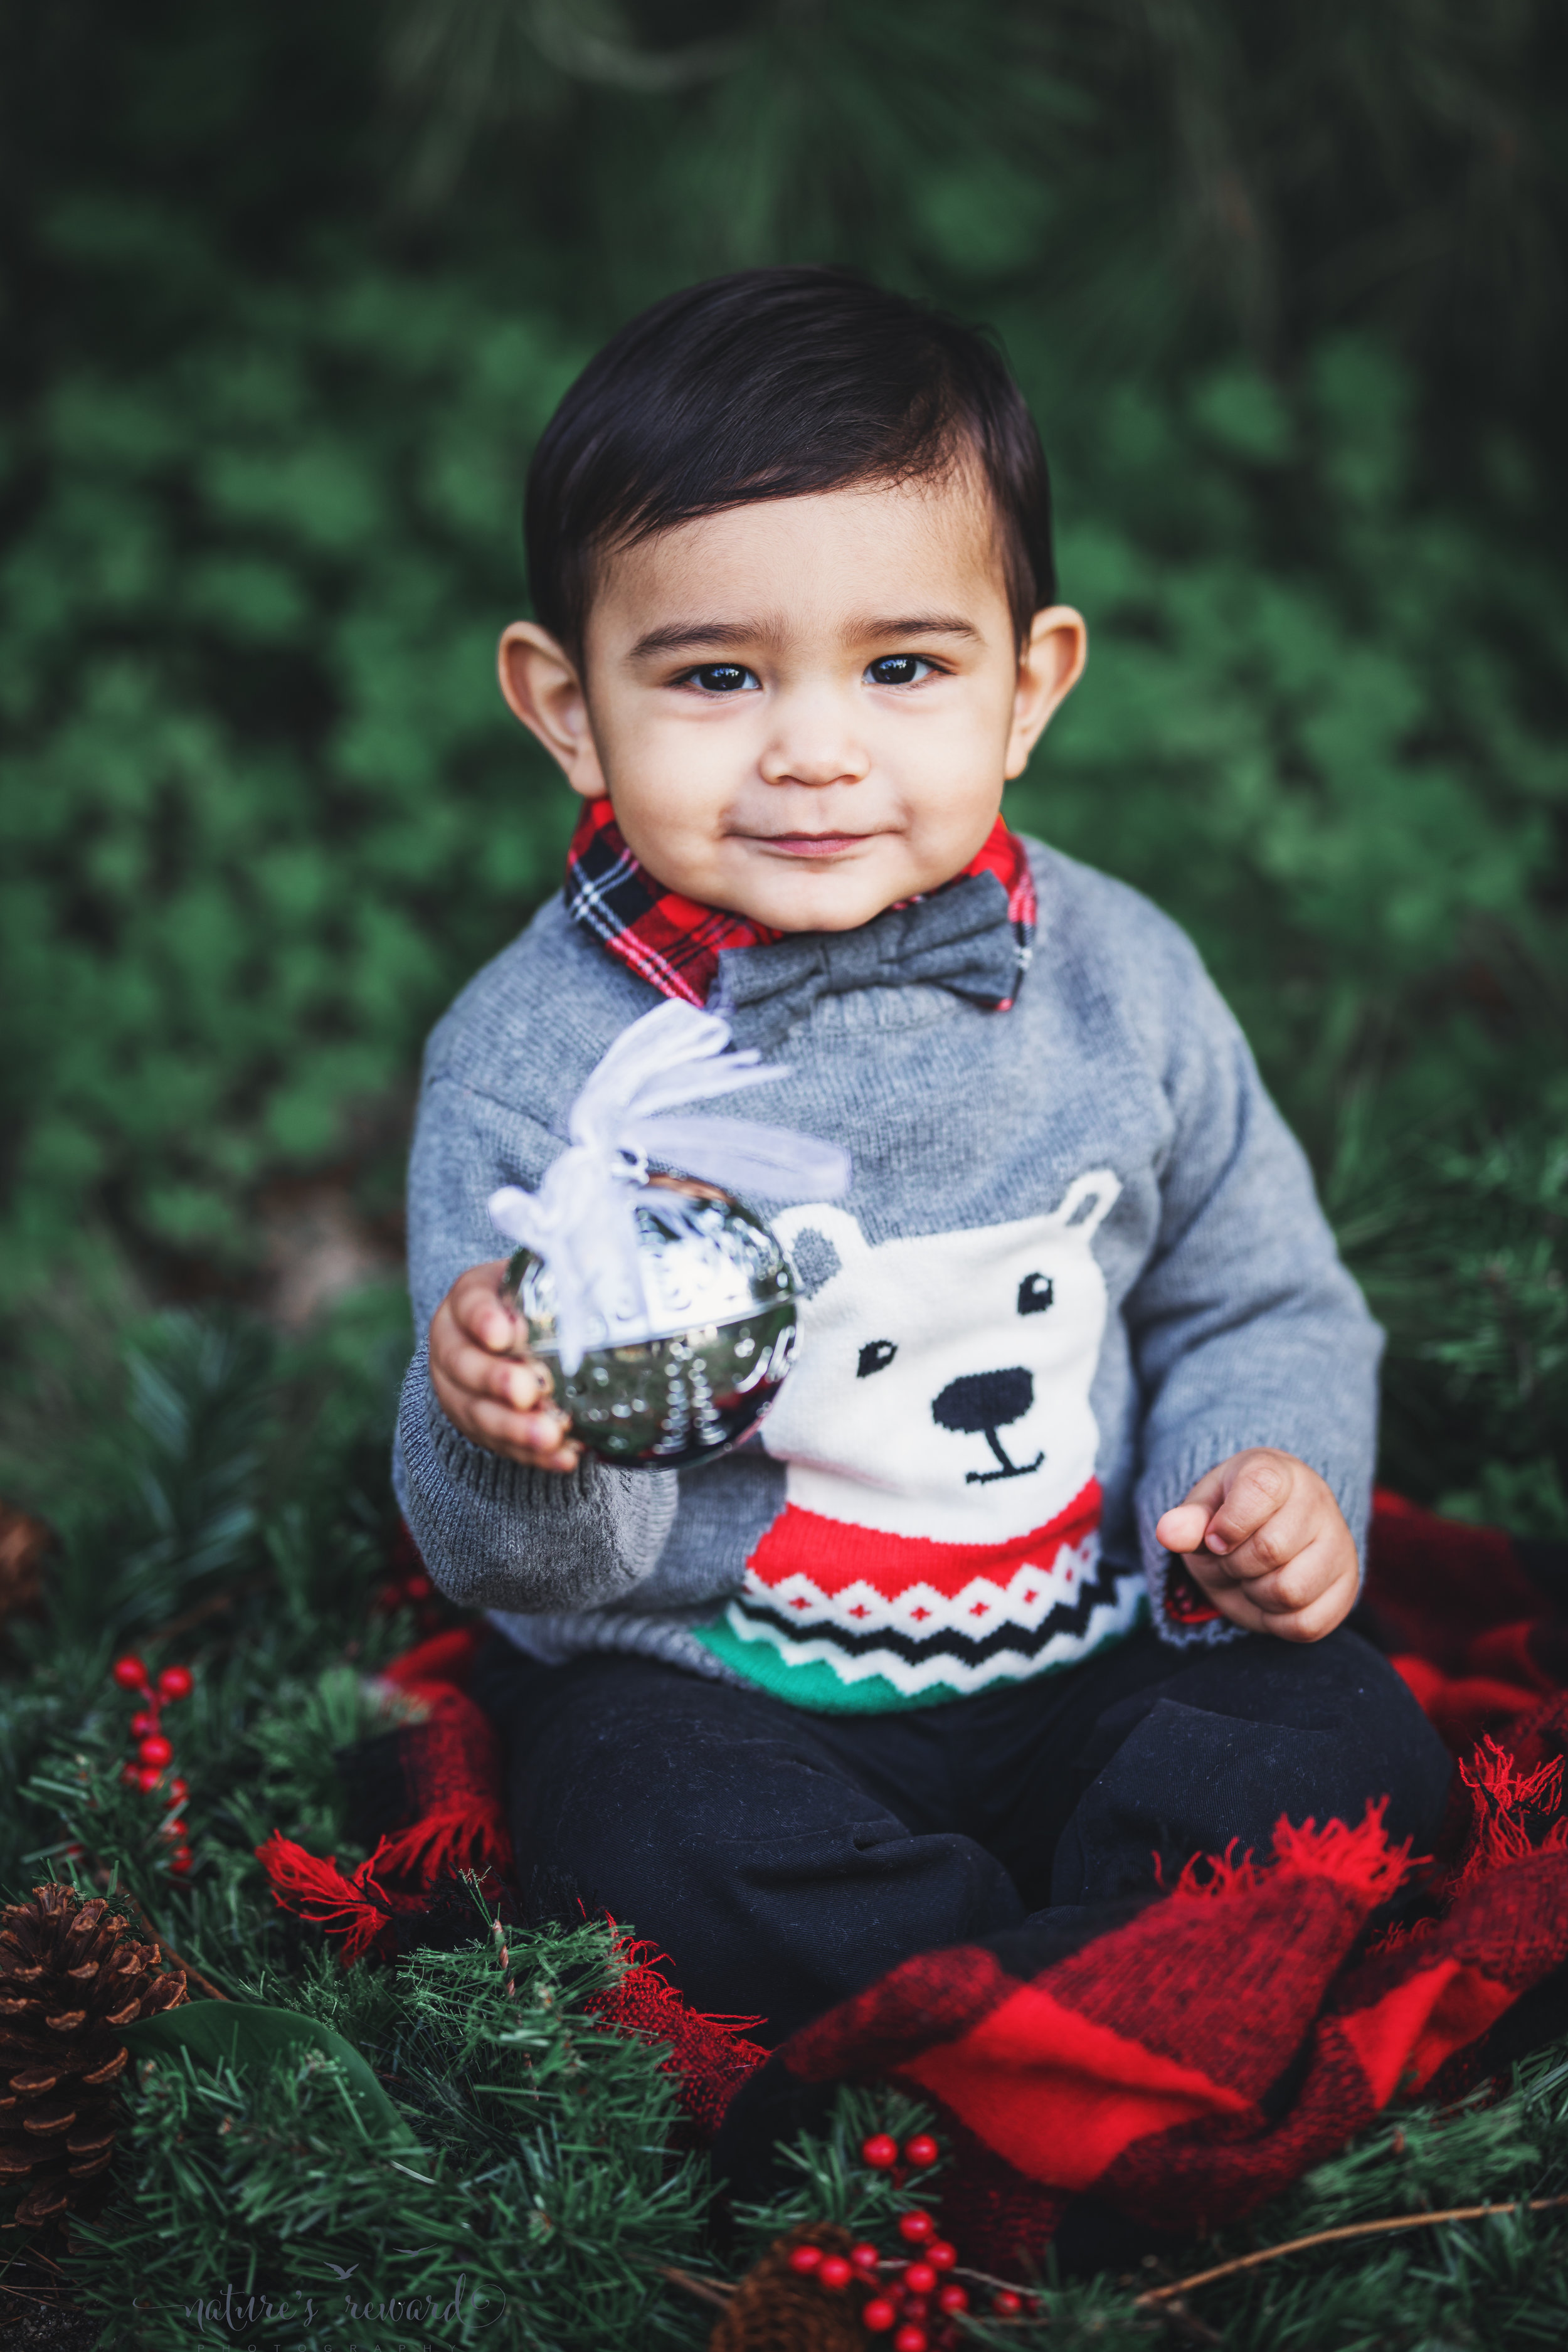 Beautiful baby boy in a Christmas portrait by Nature's Reward Photography